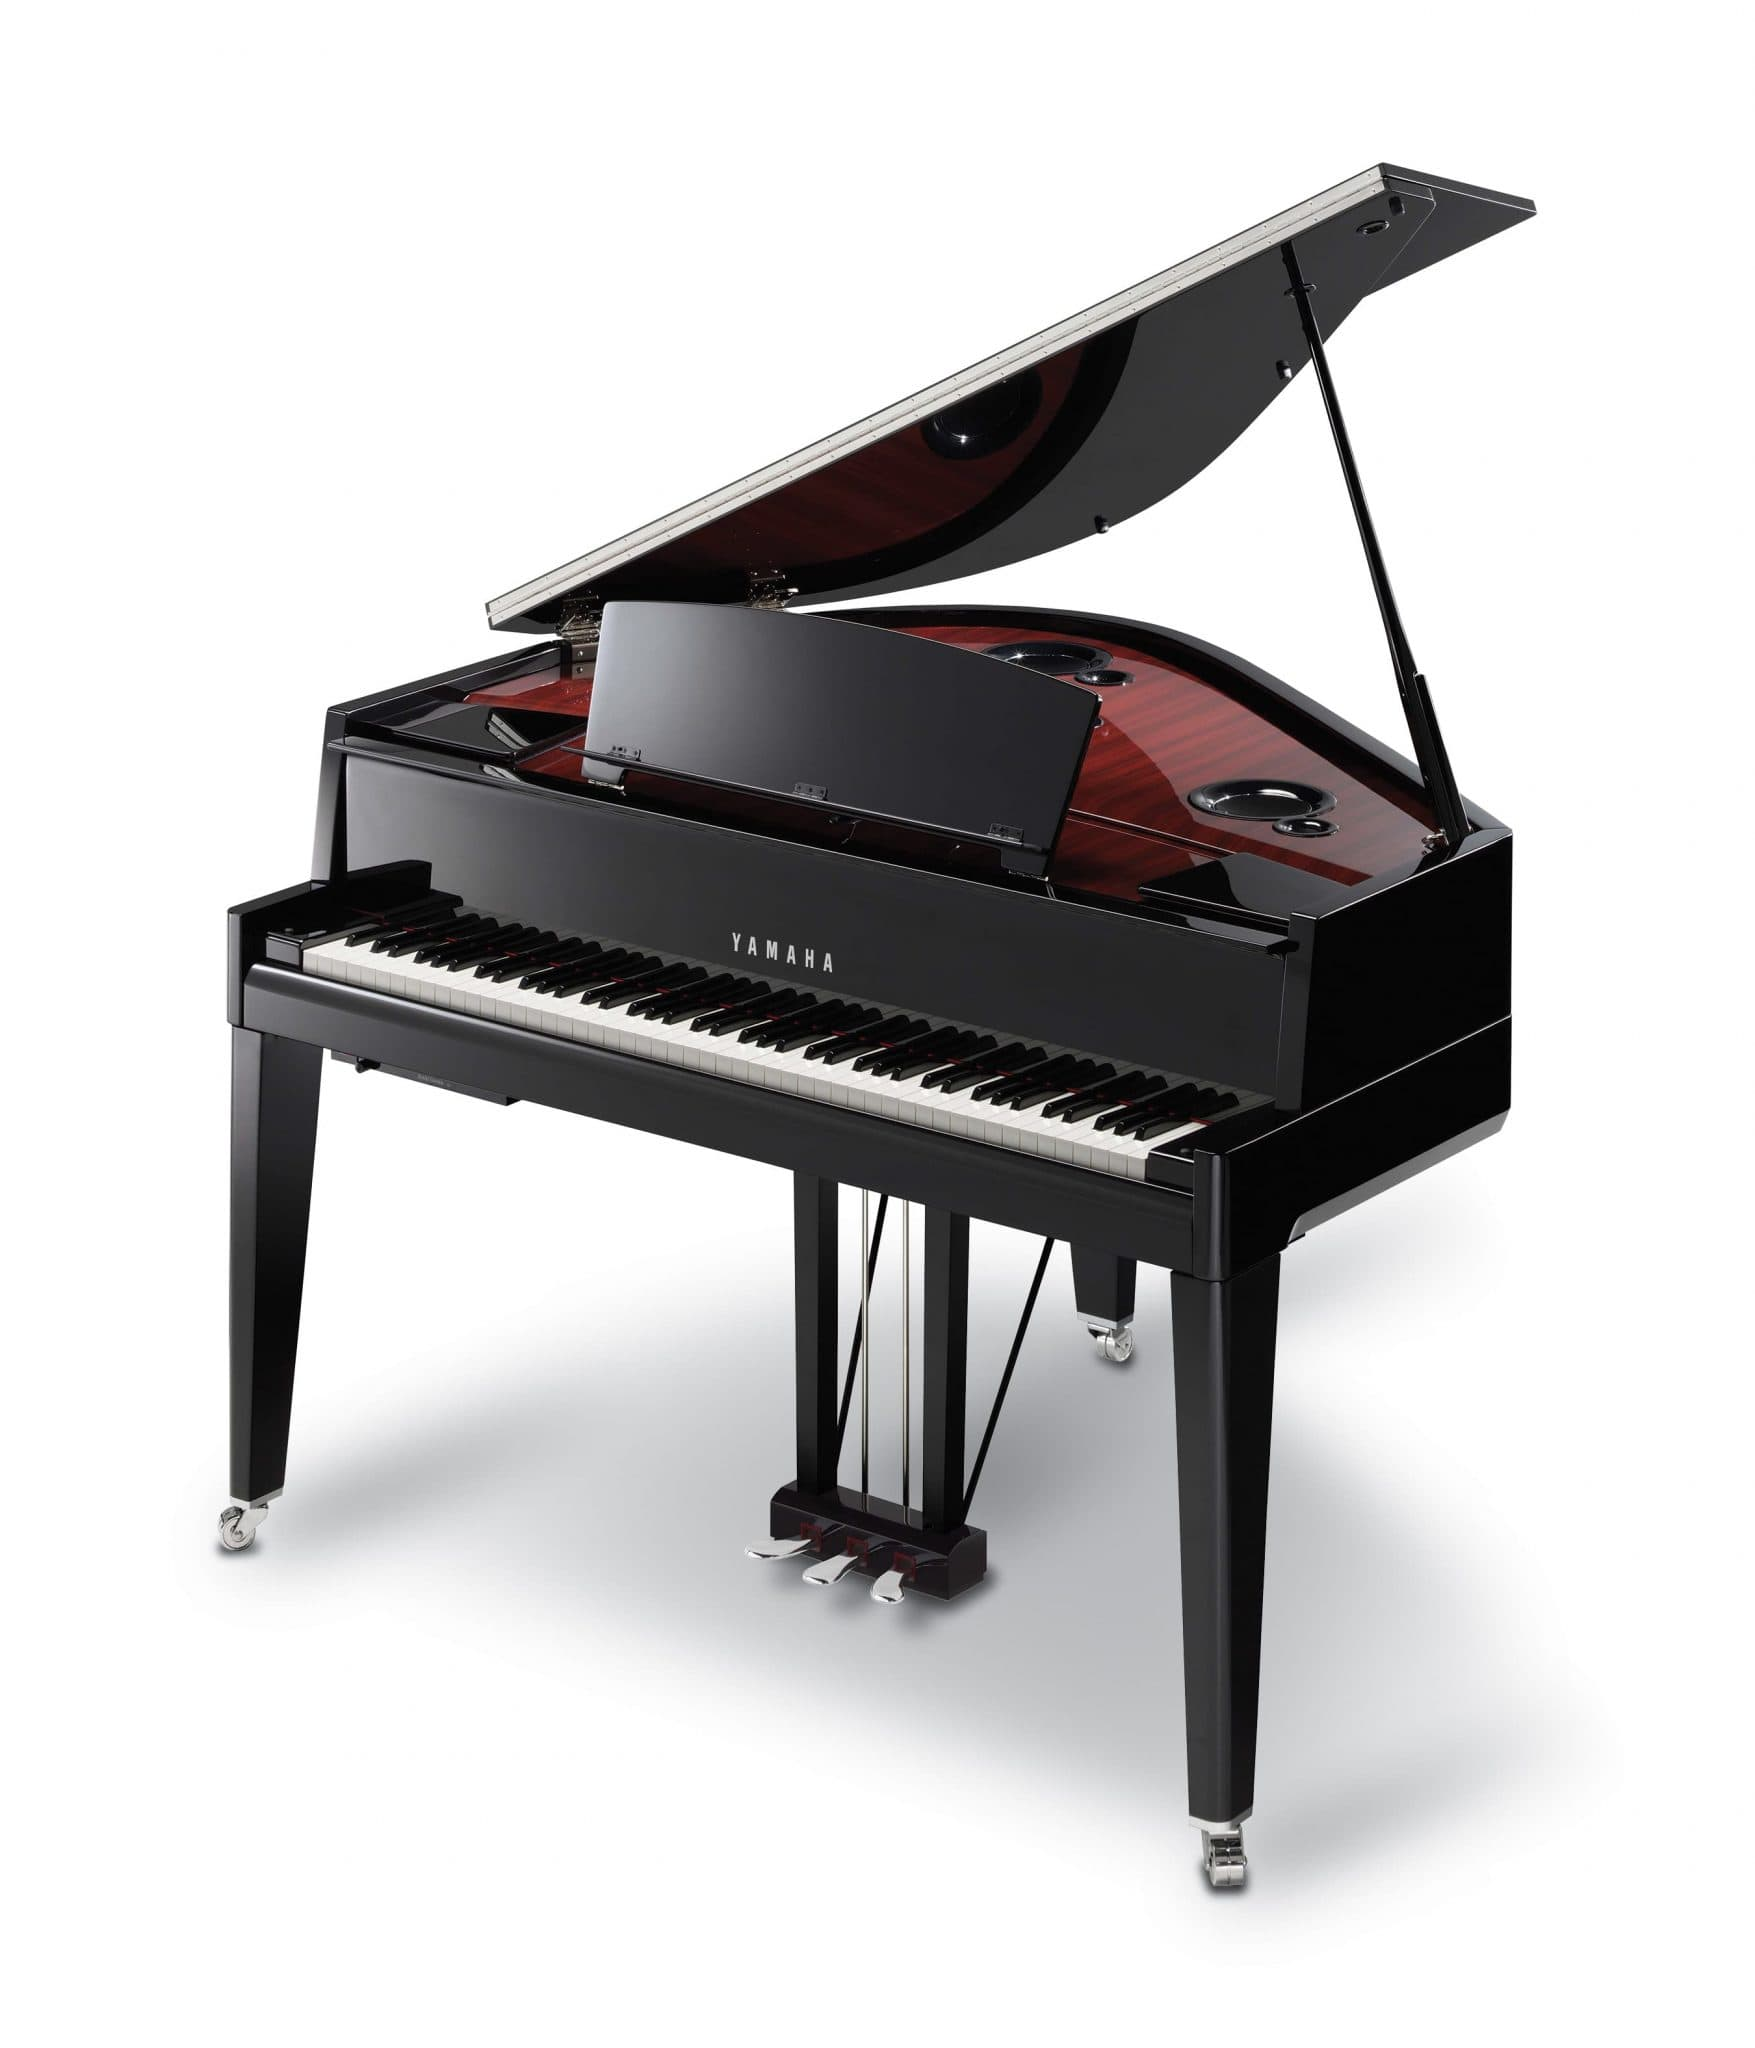 What are hybrid pianos? Here's the definition.